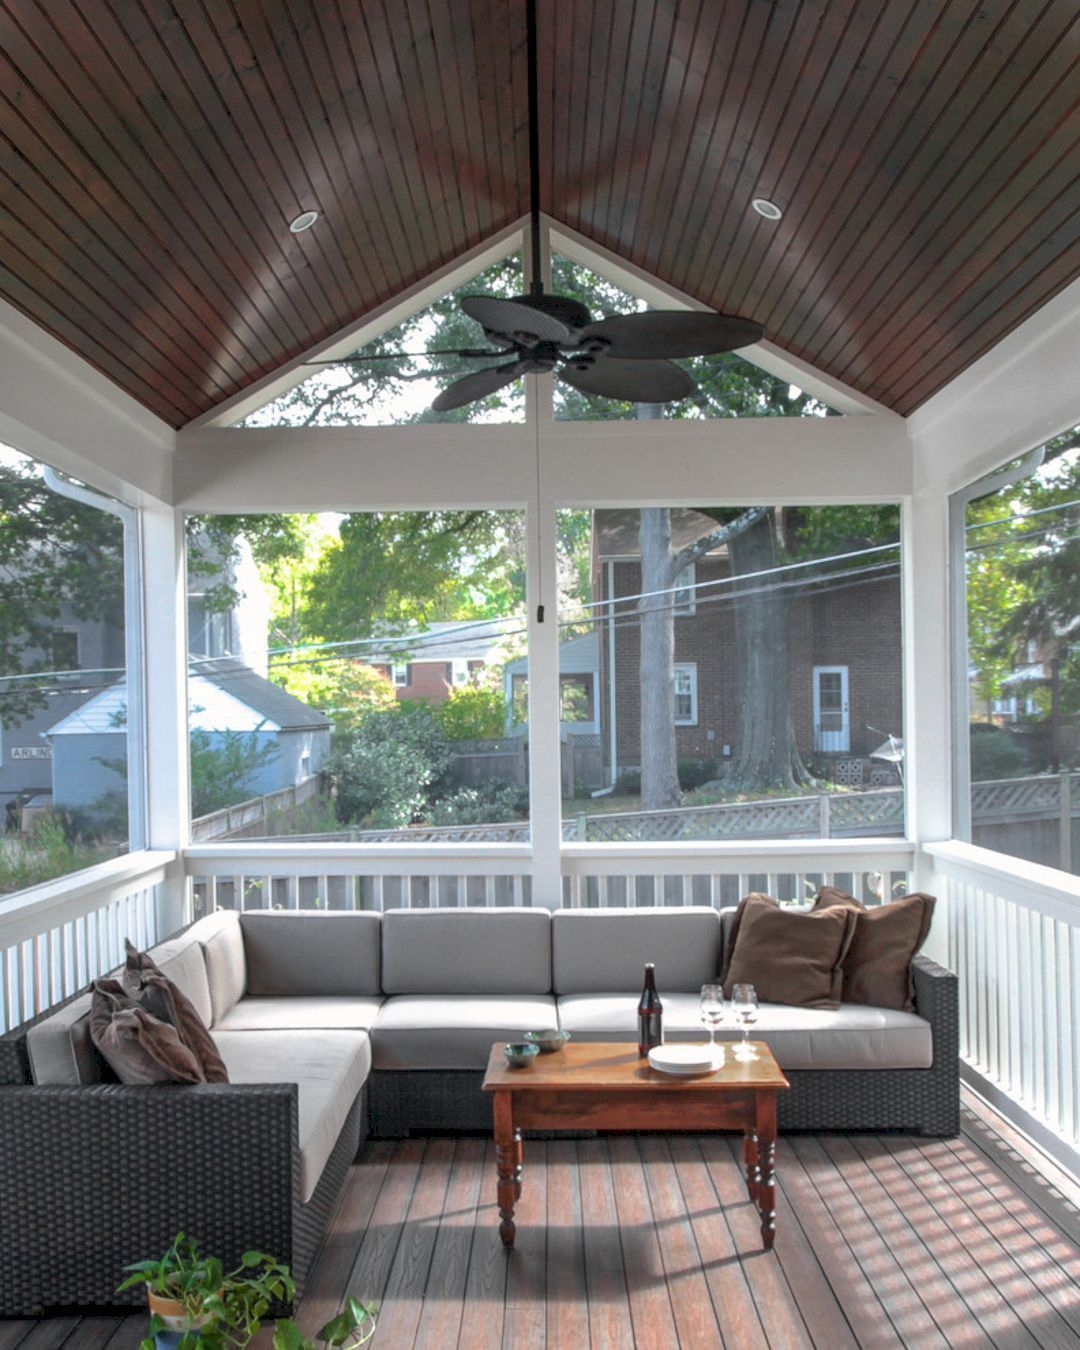 Screen Porch Ideas Designs: Wonderful Screened In Porch And Deck: 119 Best Design